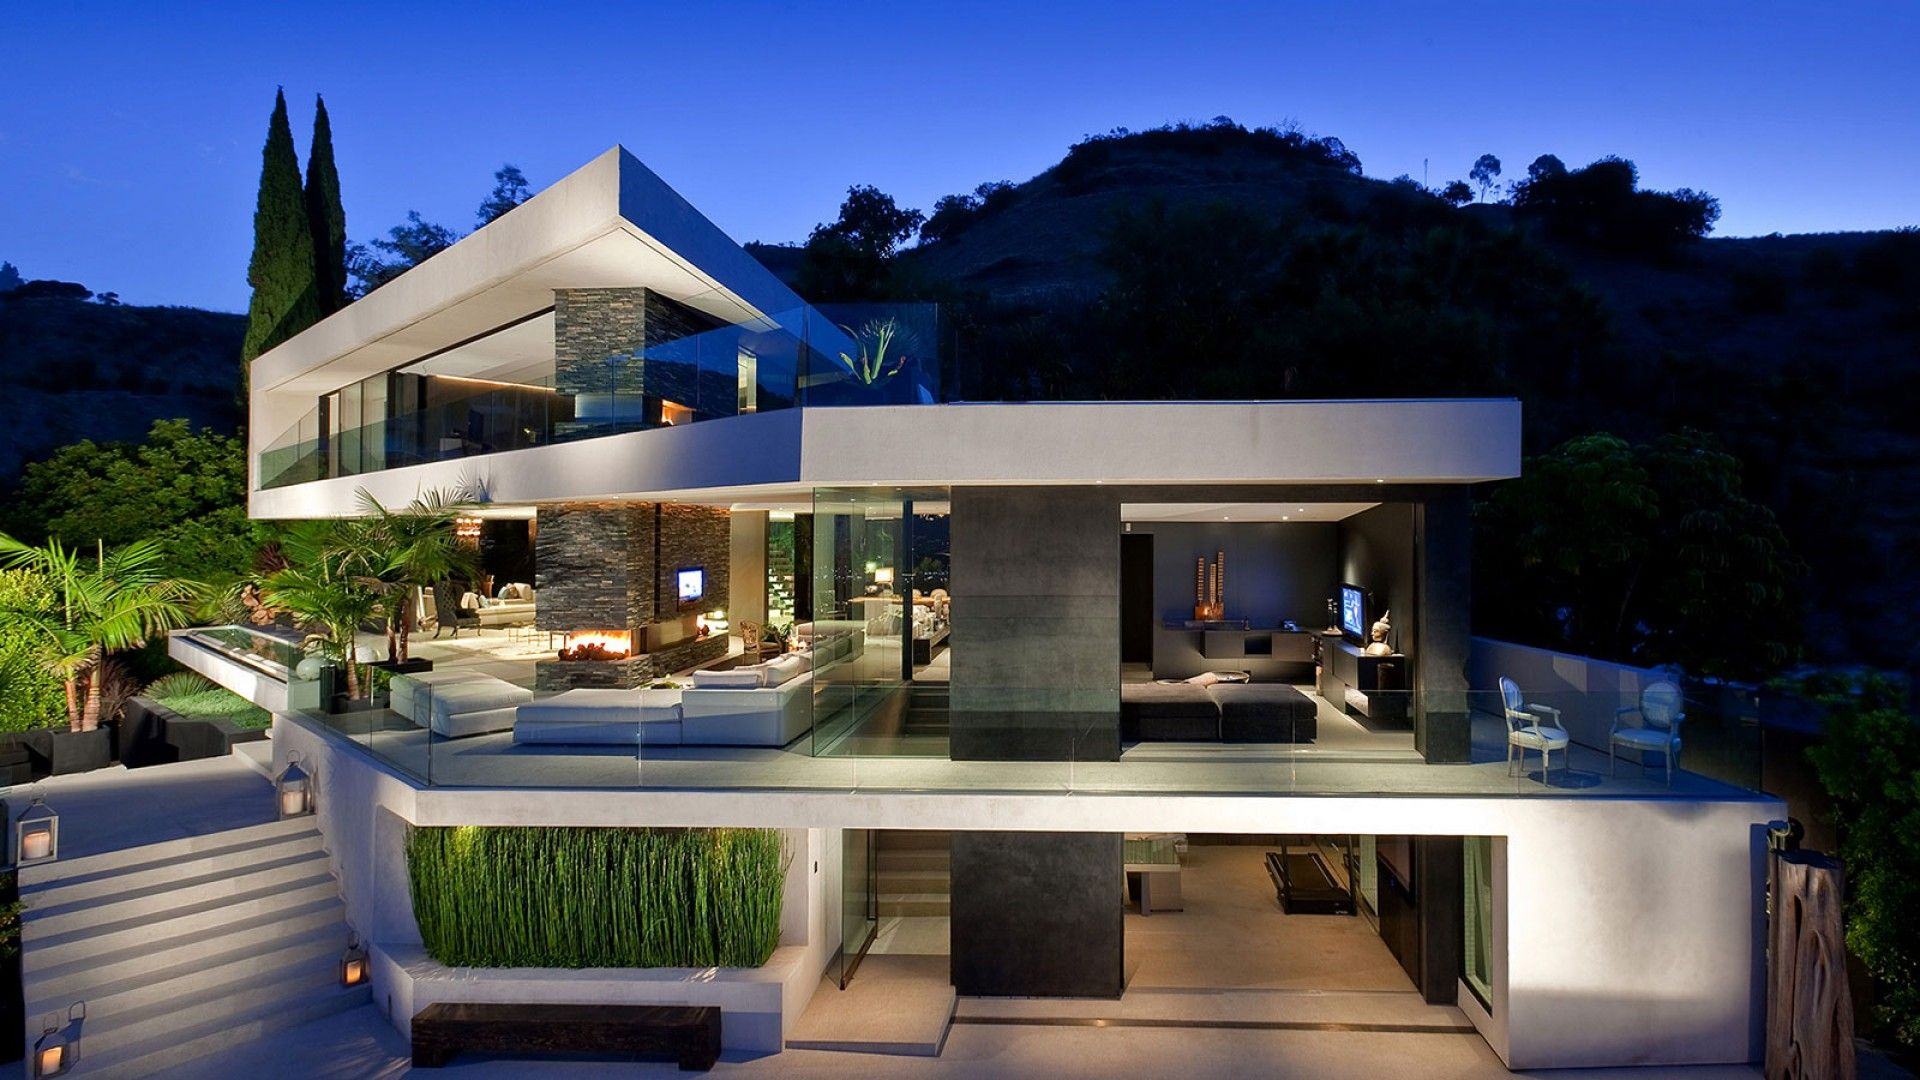 Hollywood hills mansions spectacular hollywood hills for Casa minimalista harborview hills